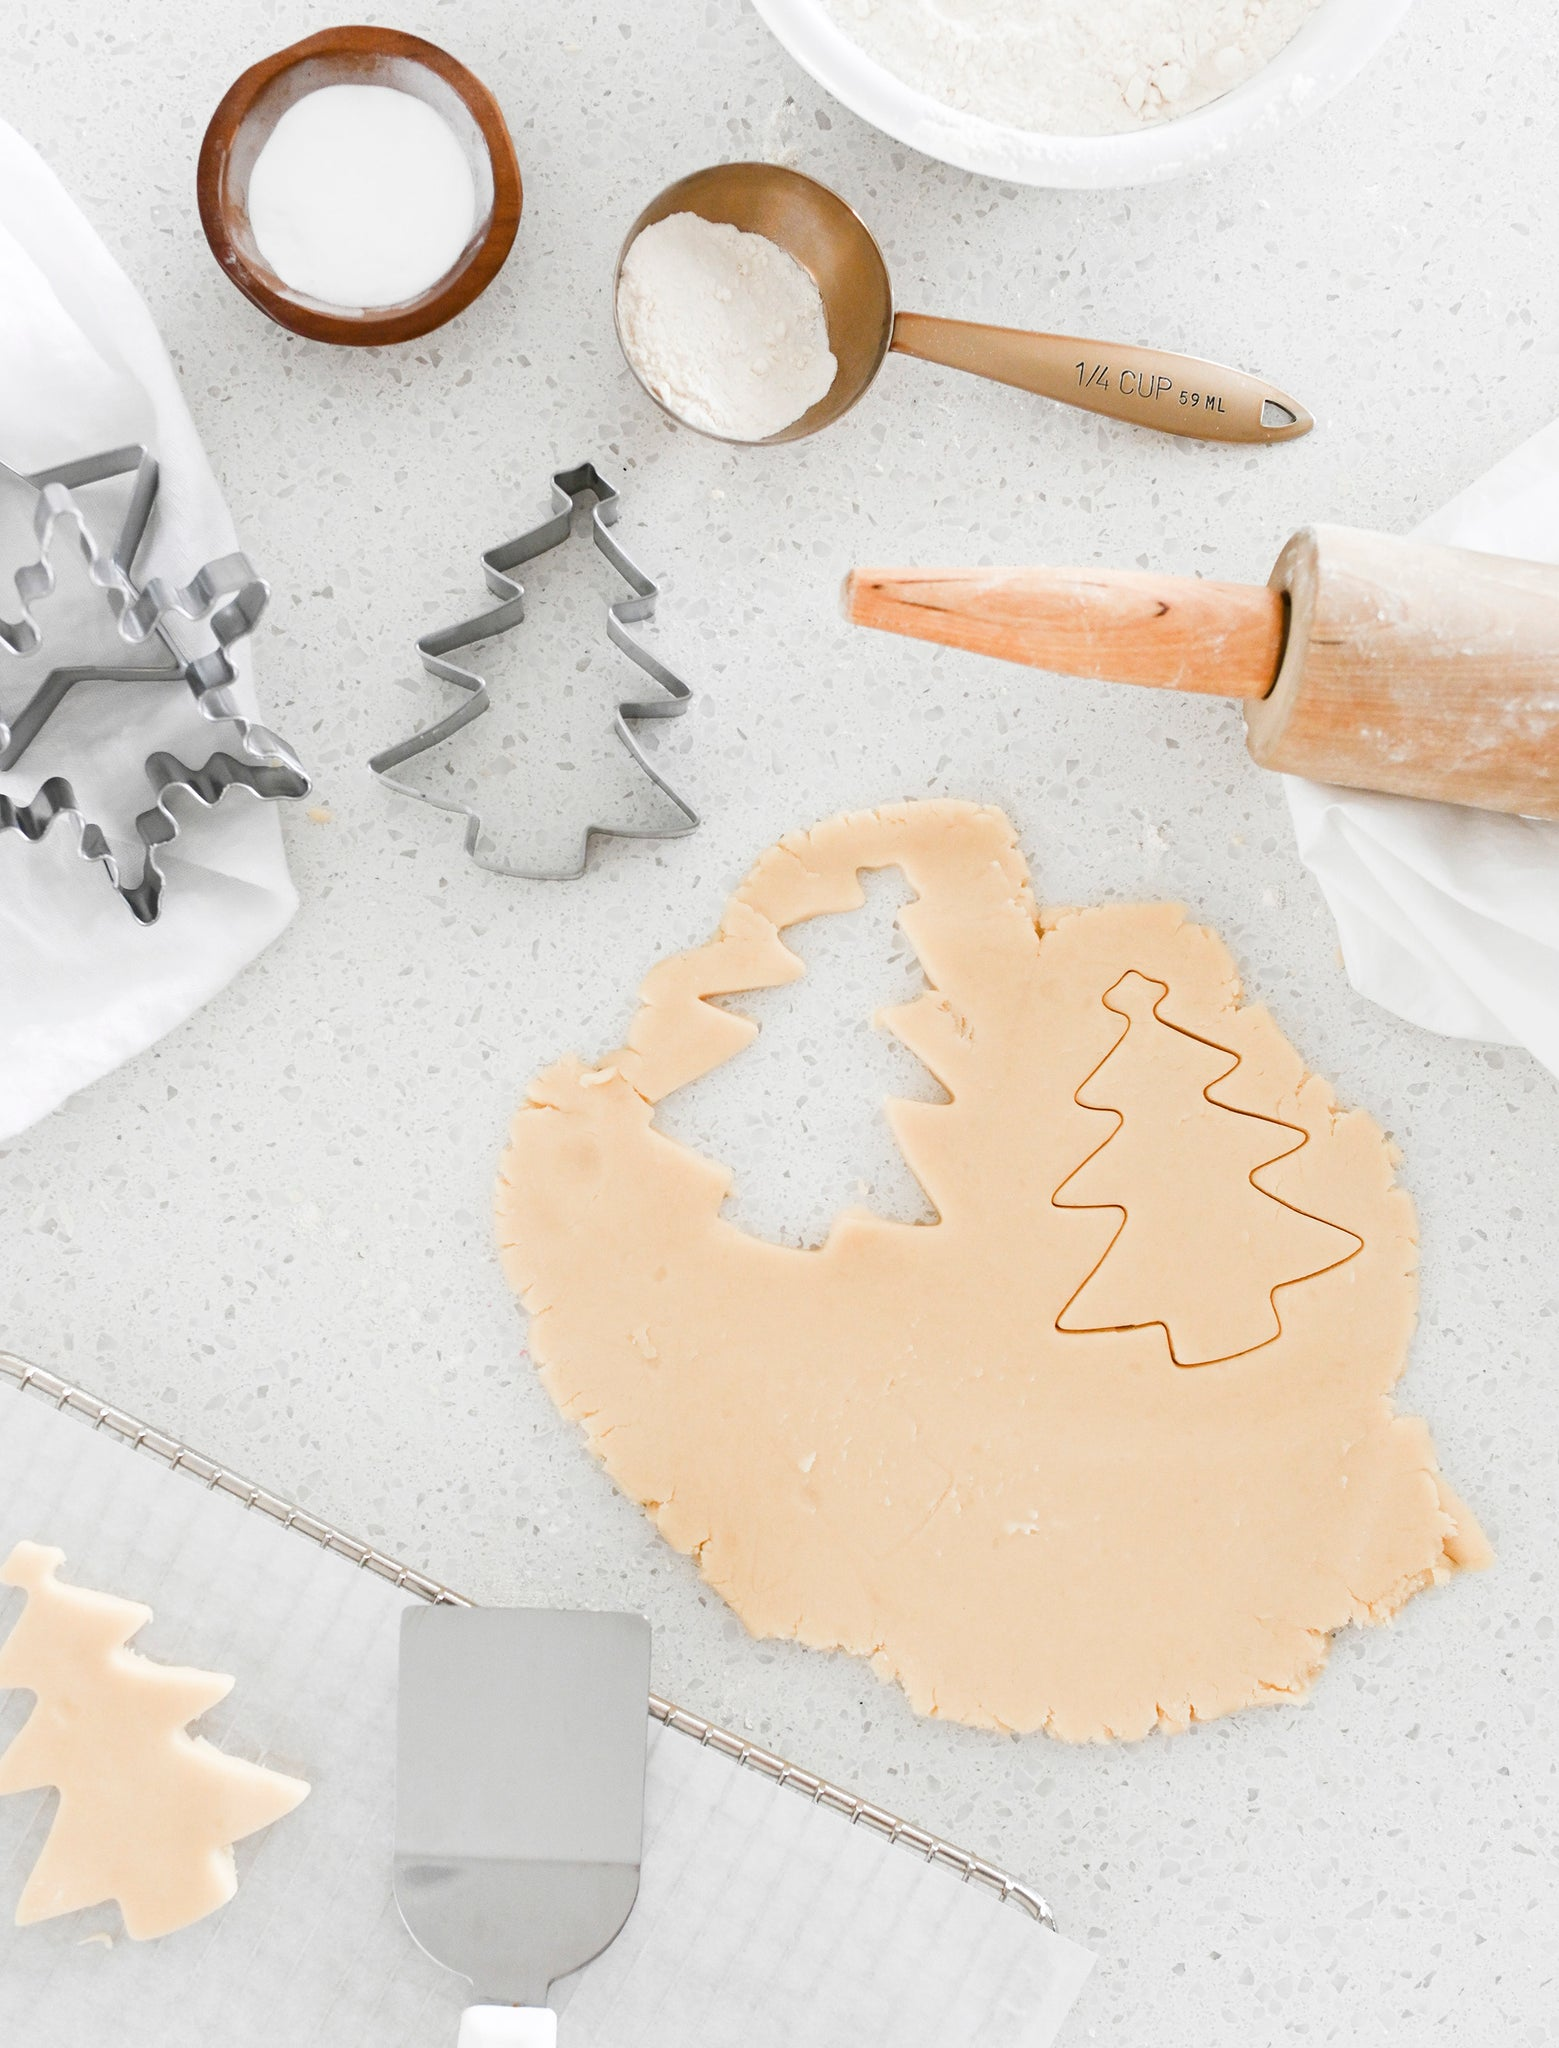 6 Creative and Useful Hobbies - Cooking and Baking - Pretty Collected